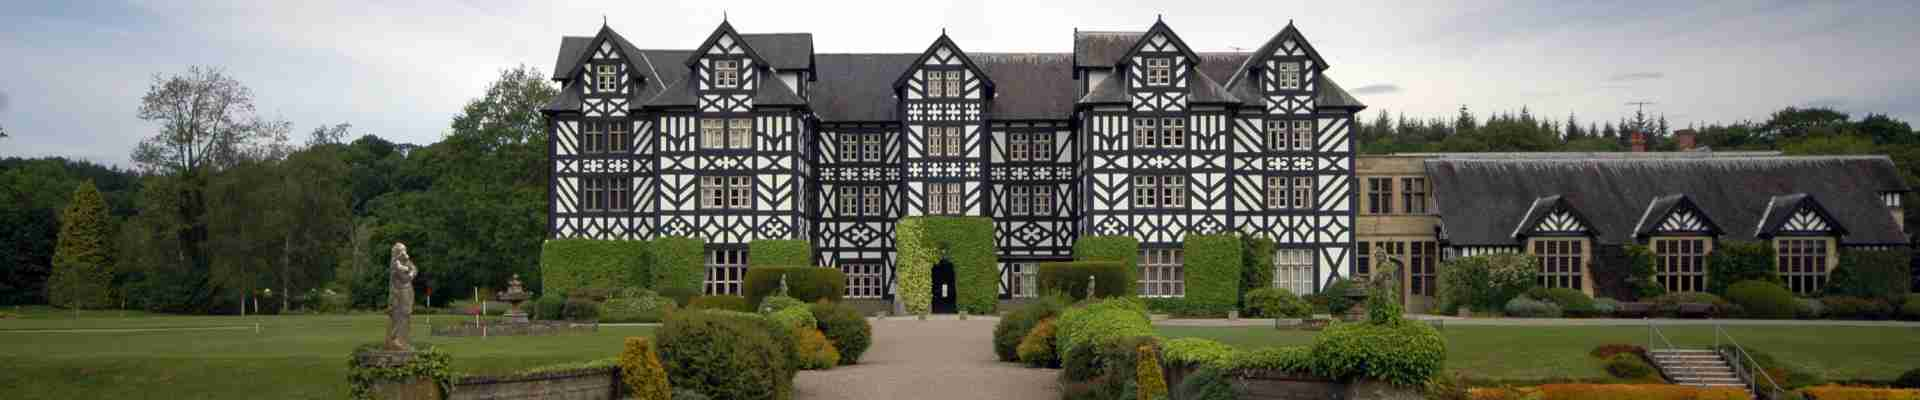 Wales' oldest classical music festival in June is hosted at Gregynog an impressive country mansion i